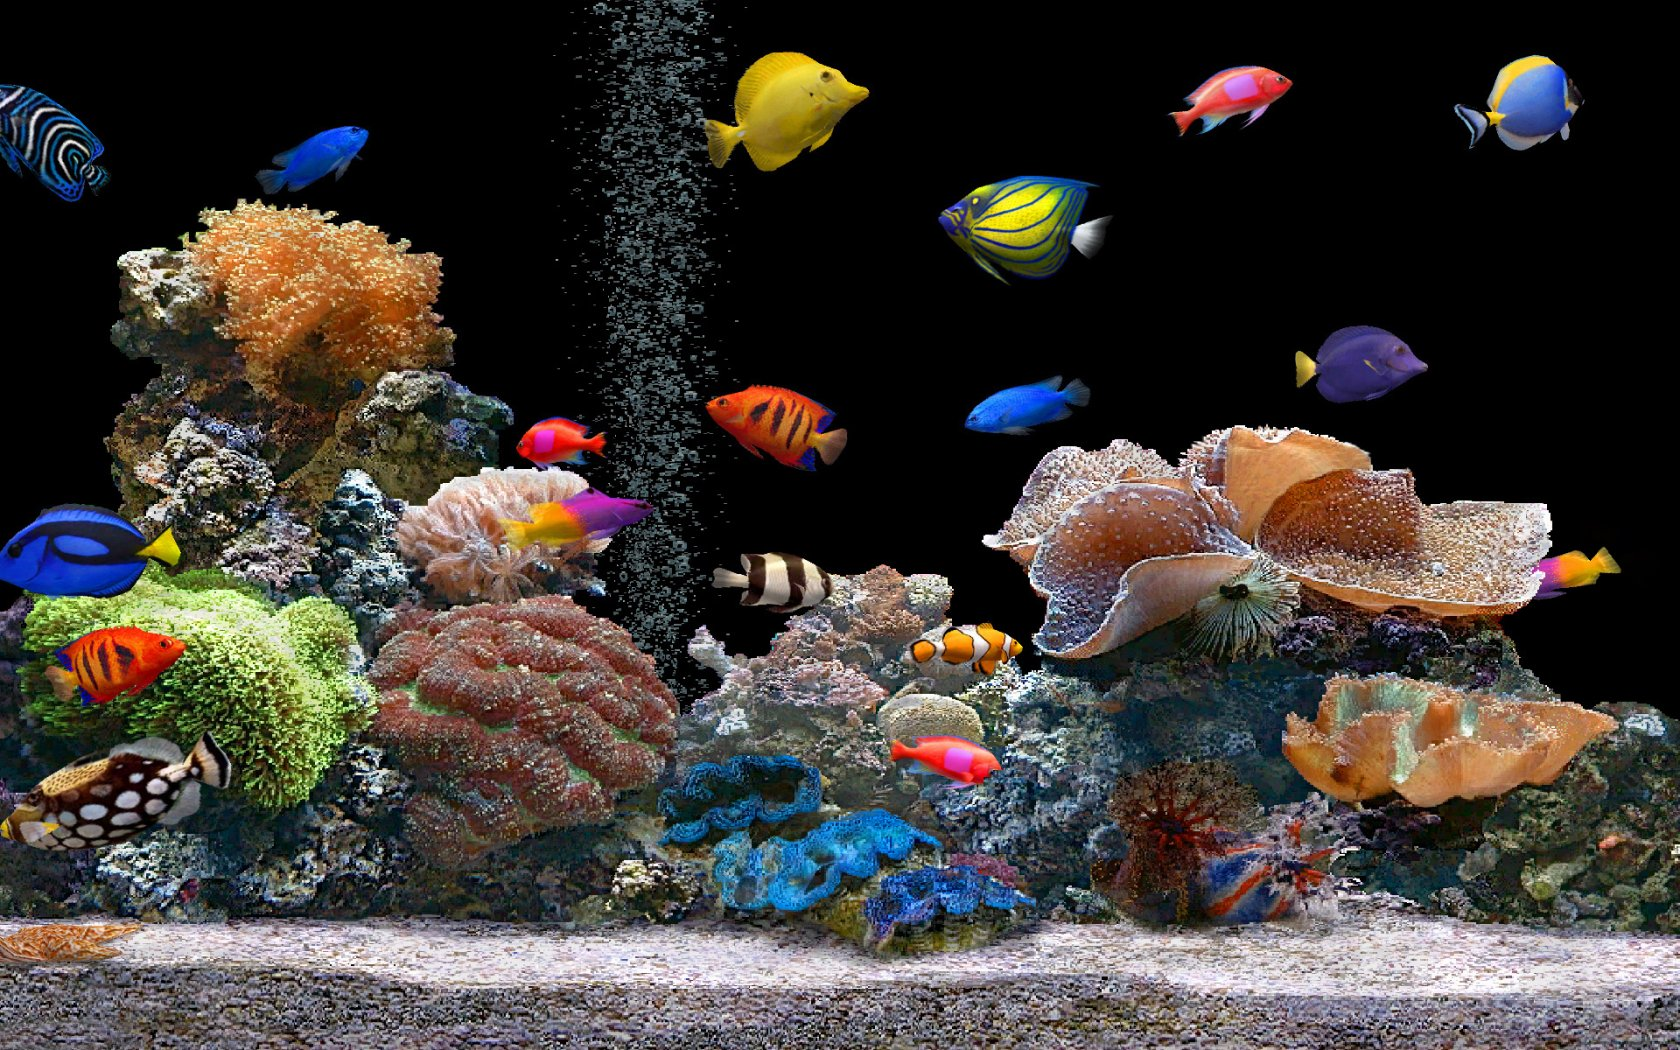 Fish Aquarium HD Wallpaper